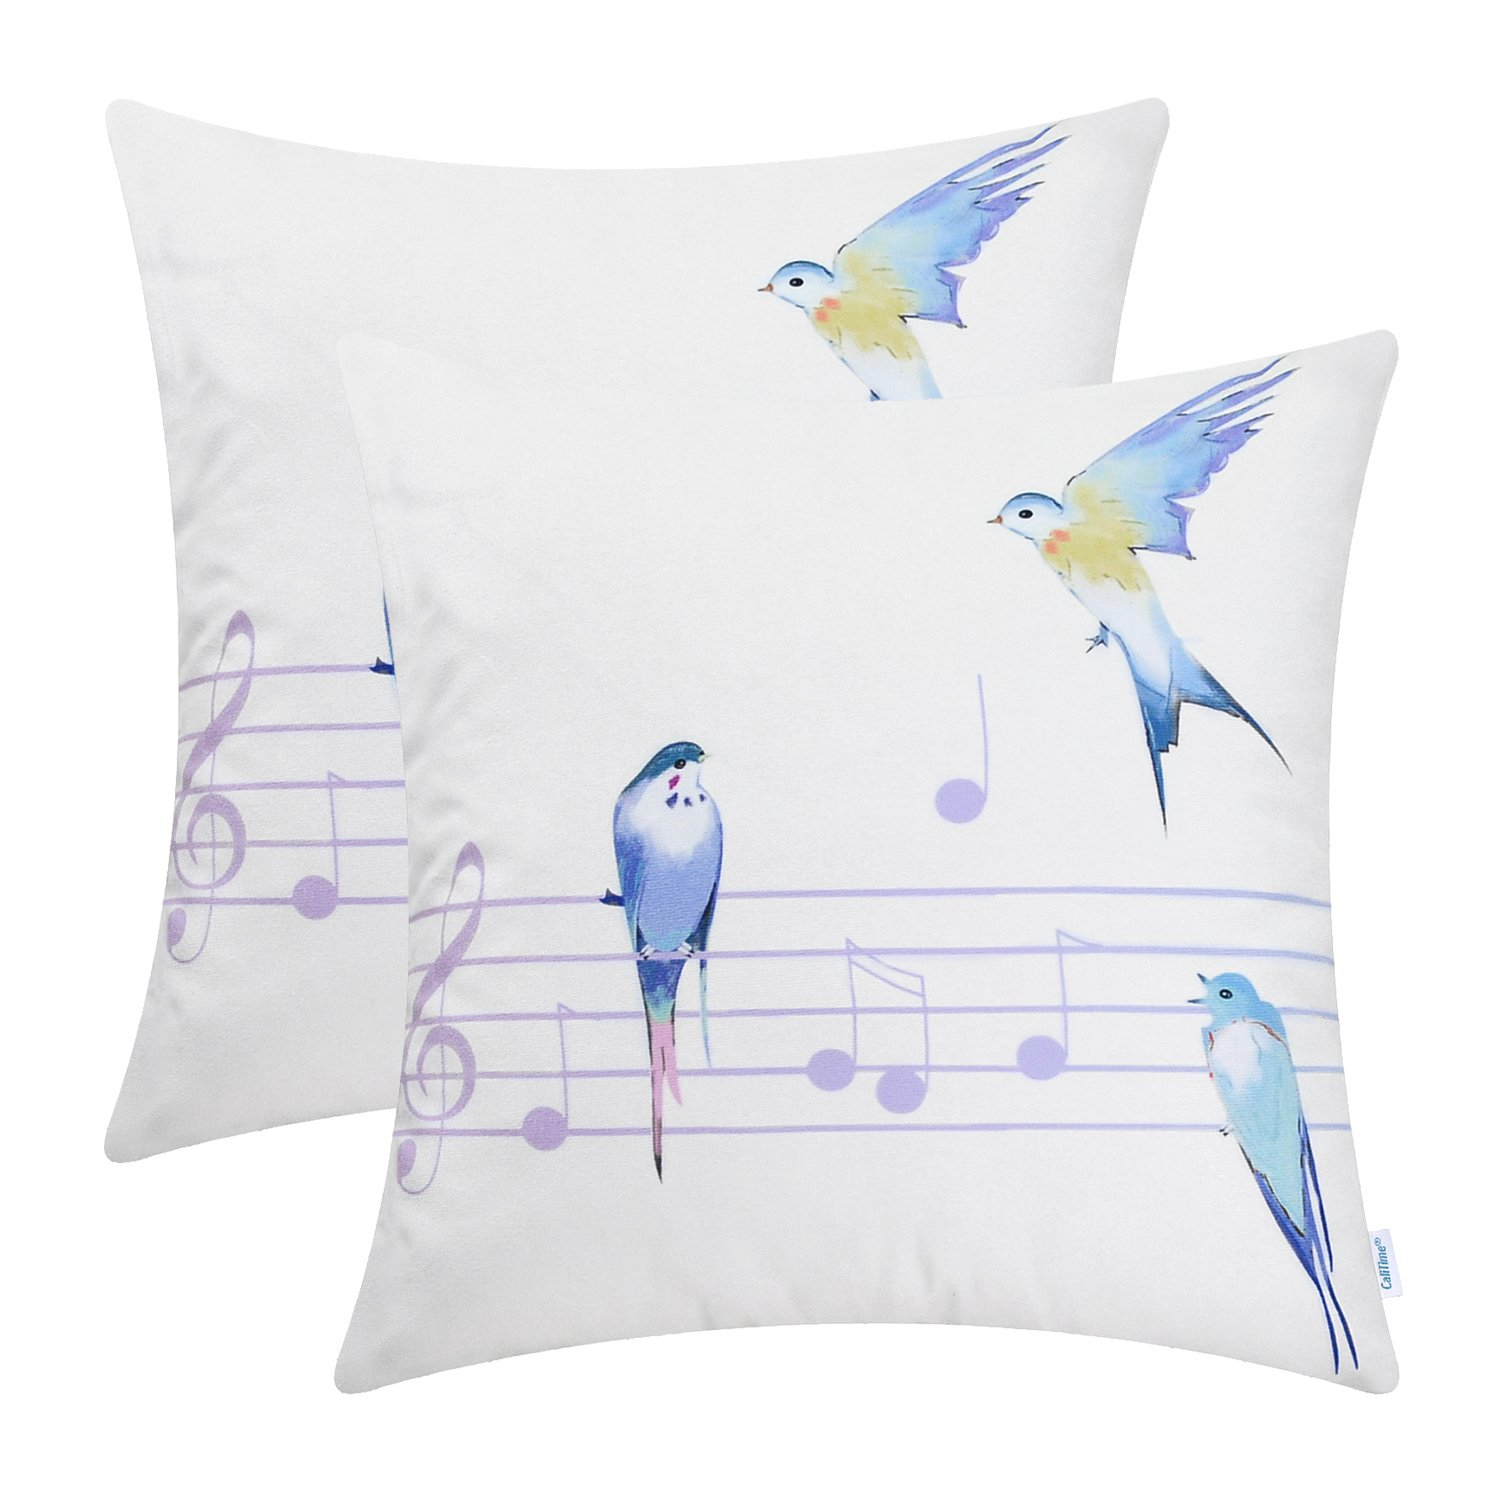 CaliTime Pack of 2 Cozy Fleece Throw Pillow Cases Covers Couch Bed Sofa Watercolored Birds in Music Wire 18 X 18 inches Multi Colors